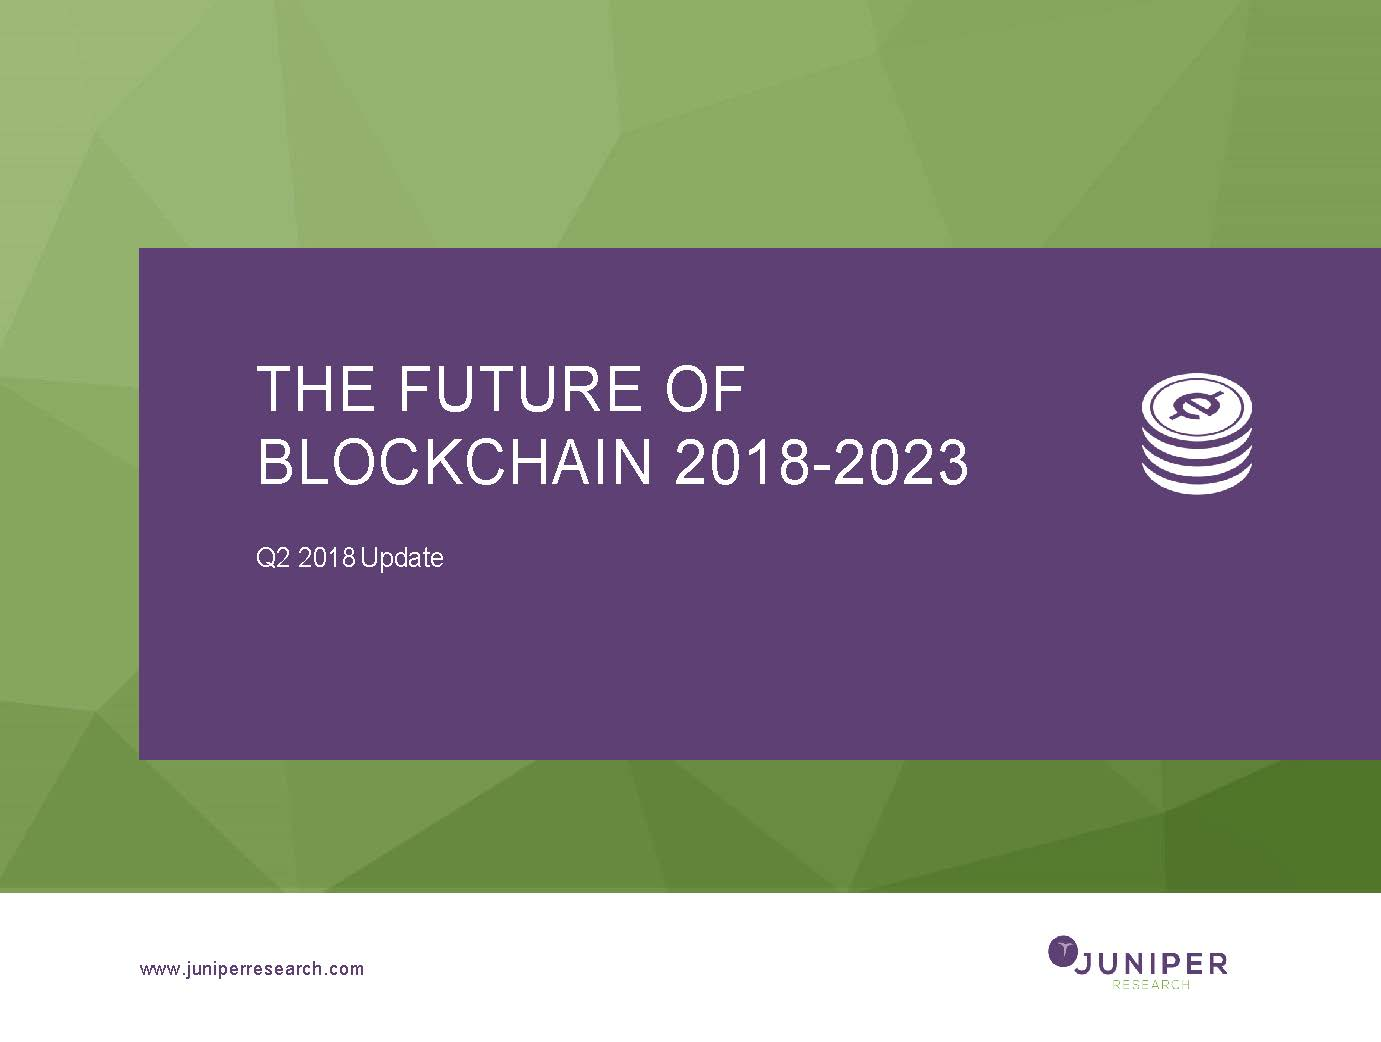 The Future of Blockchain - Q2 2018